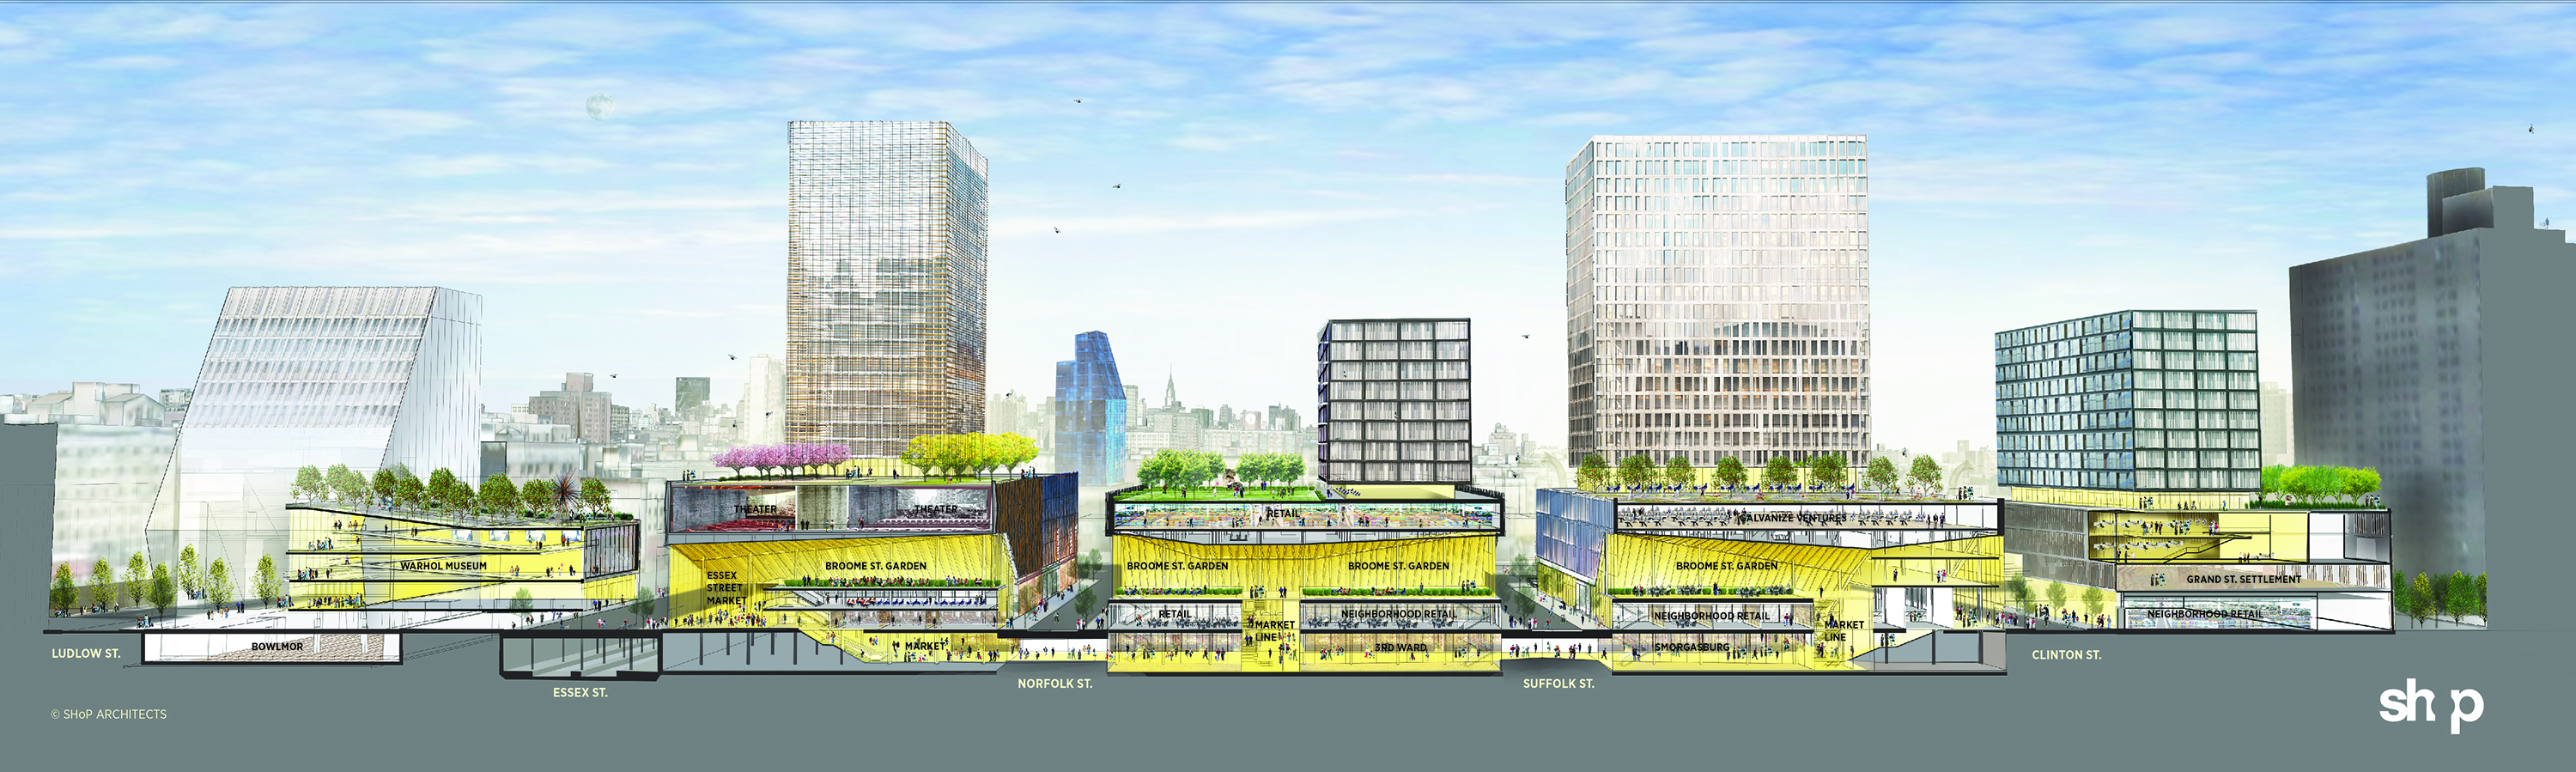 Market Line schematic, showing sites 2, 3, and 4 connected. Via Curbed.